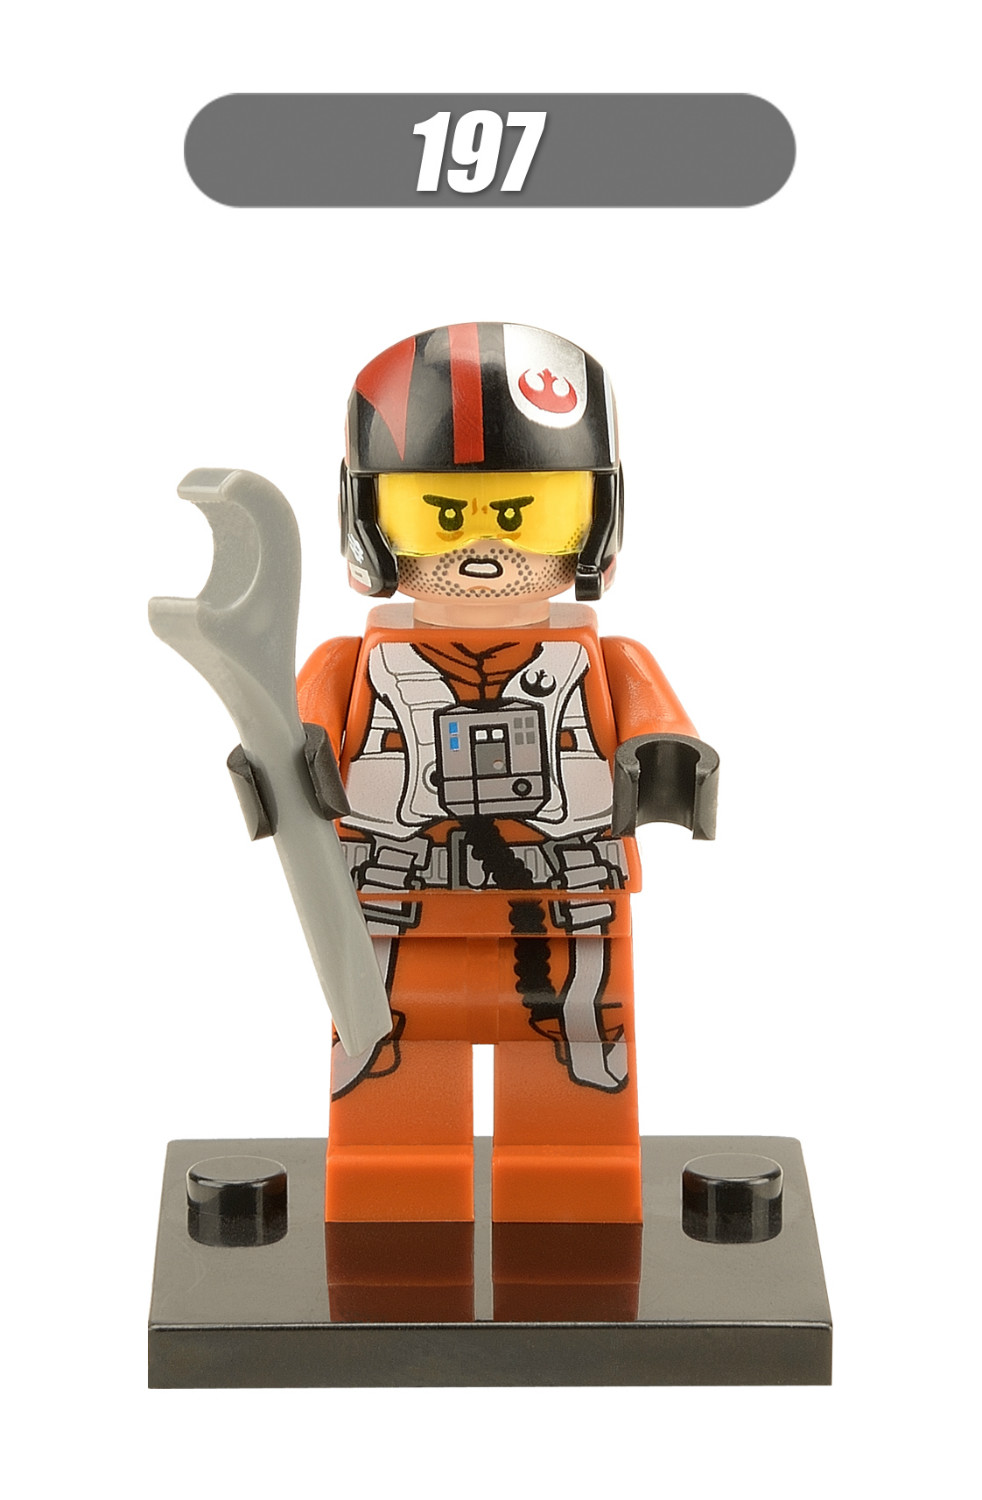 XH 197 Building Blocks Super Heroes Avengers Star Wars 7 The Force Awakens Pilot Poe Dameron Han Solo Bircks Toys For Children lecgos building blocks super heroes star wars x wing fighter millennium falcon the force awakens compatible with lecgos